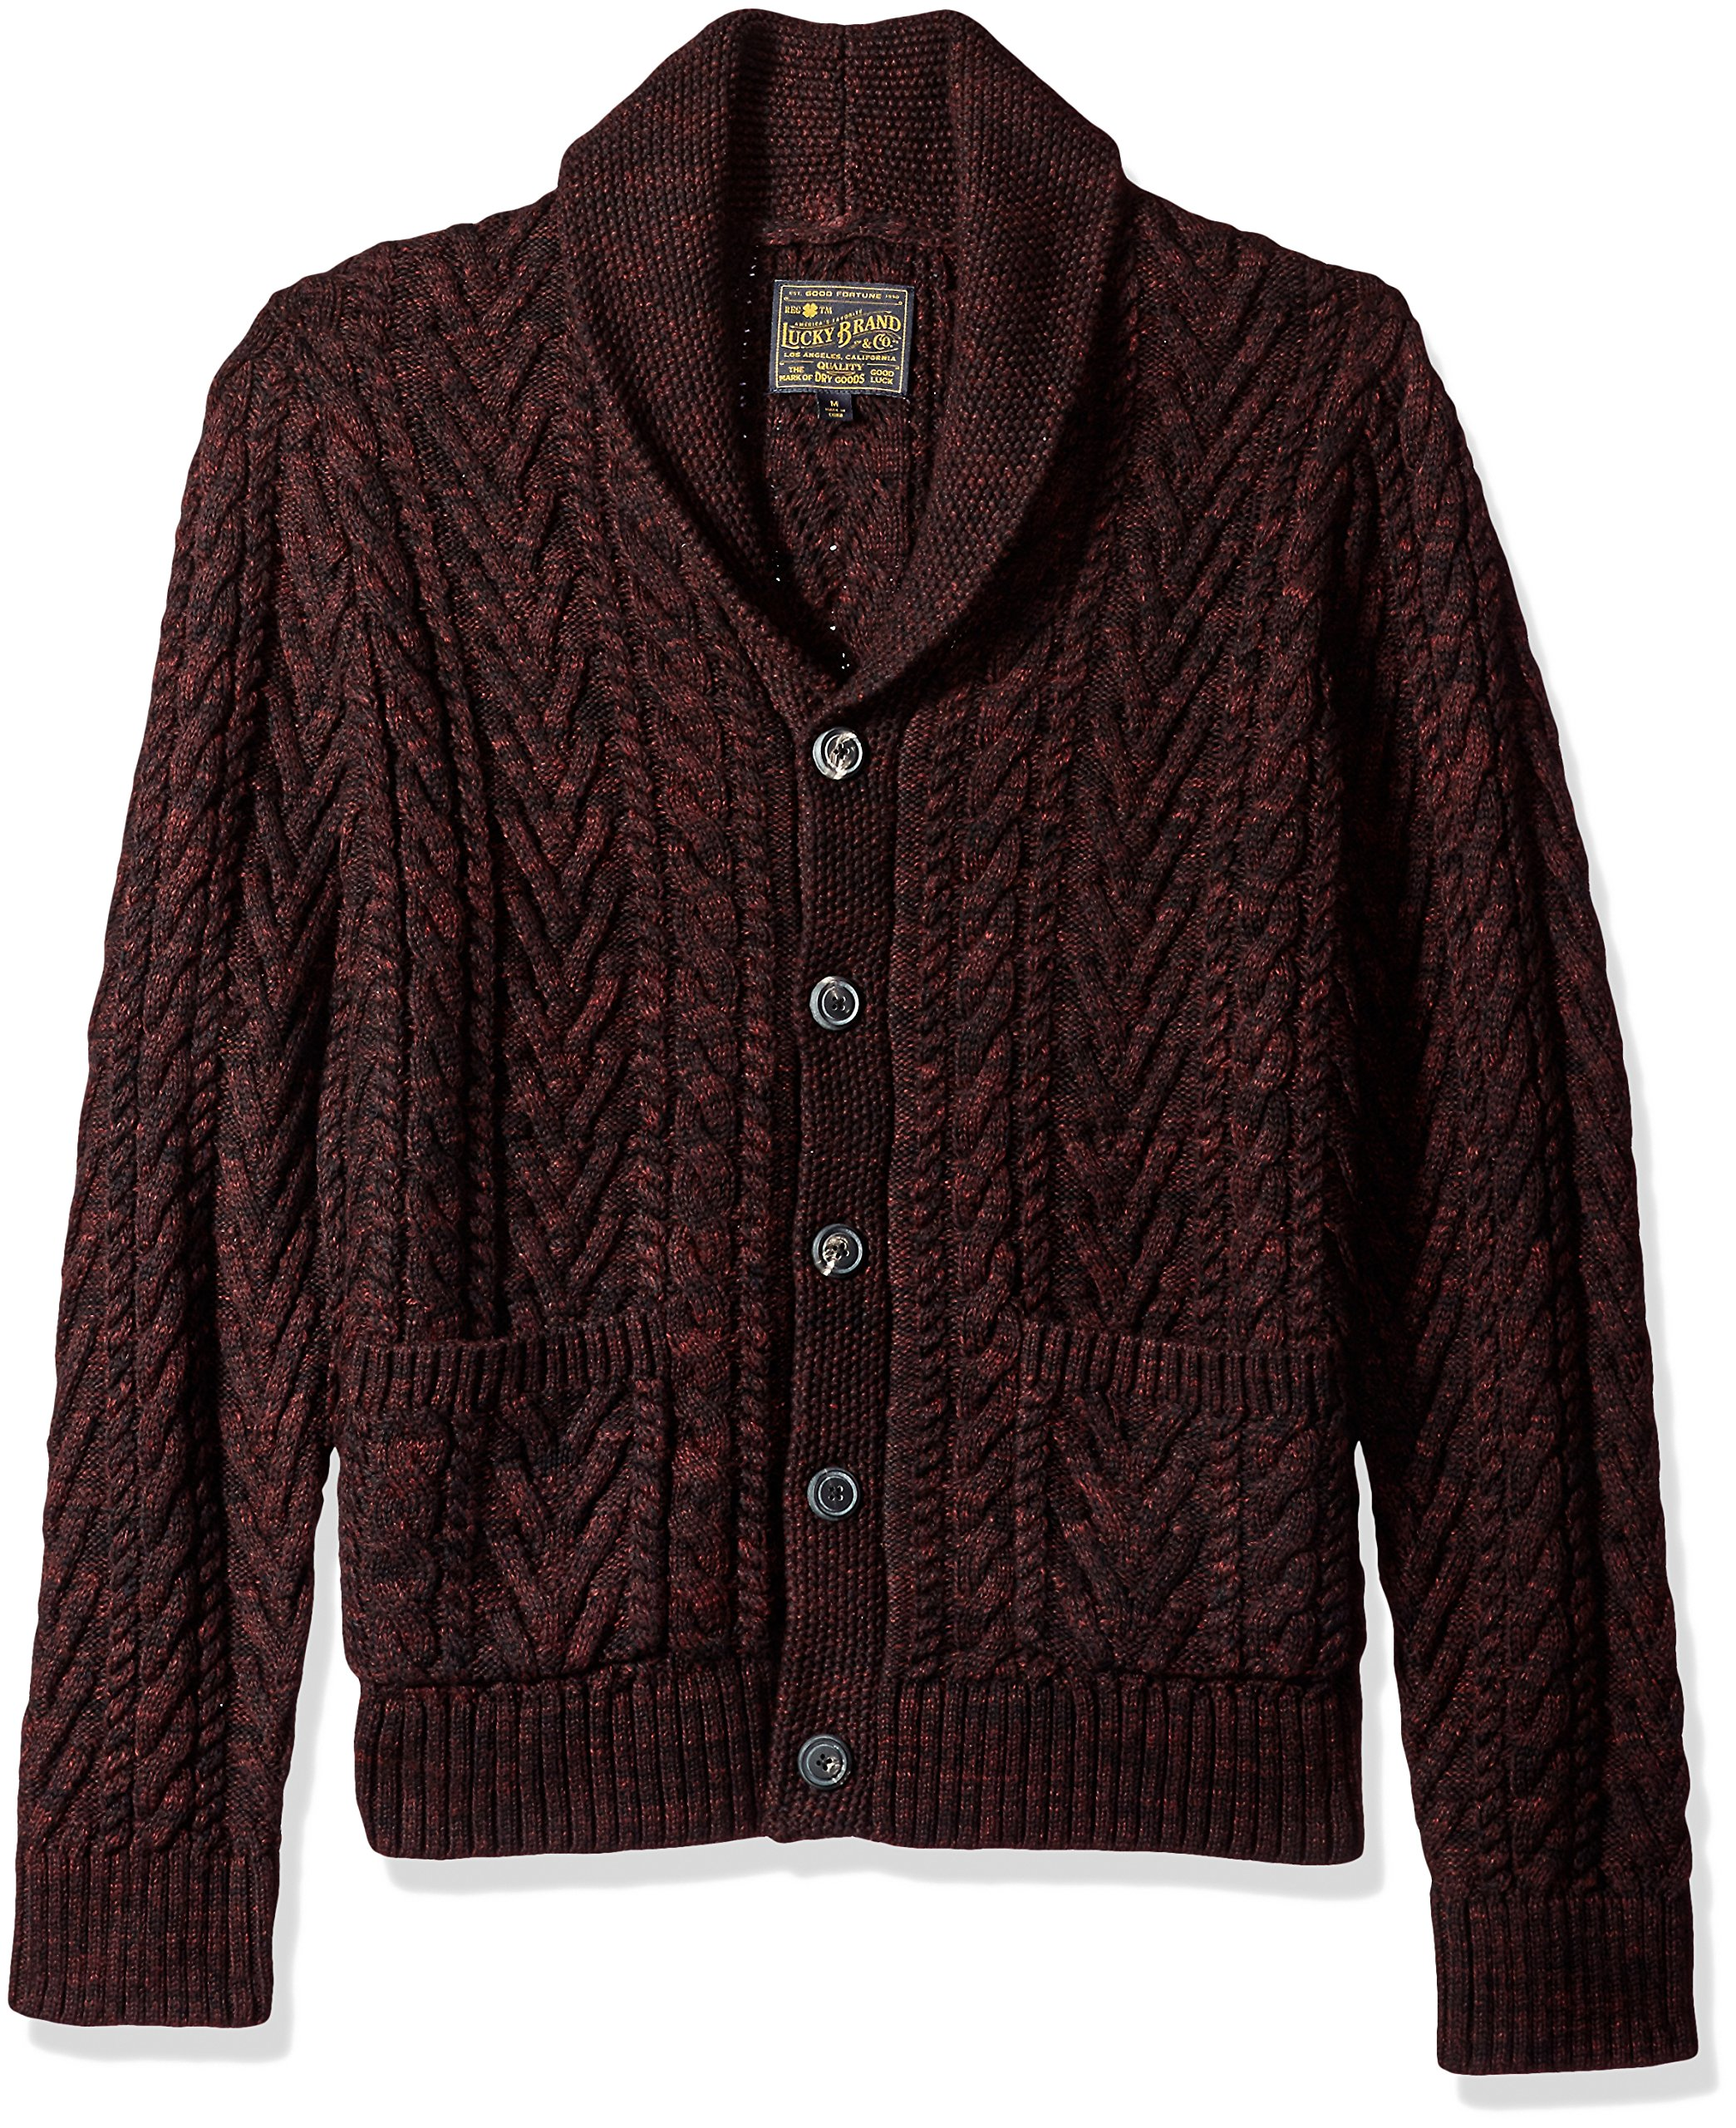 Lucky Brand Men's Cable Knit Cardigan Sweater, Burgundy, XL